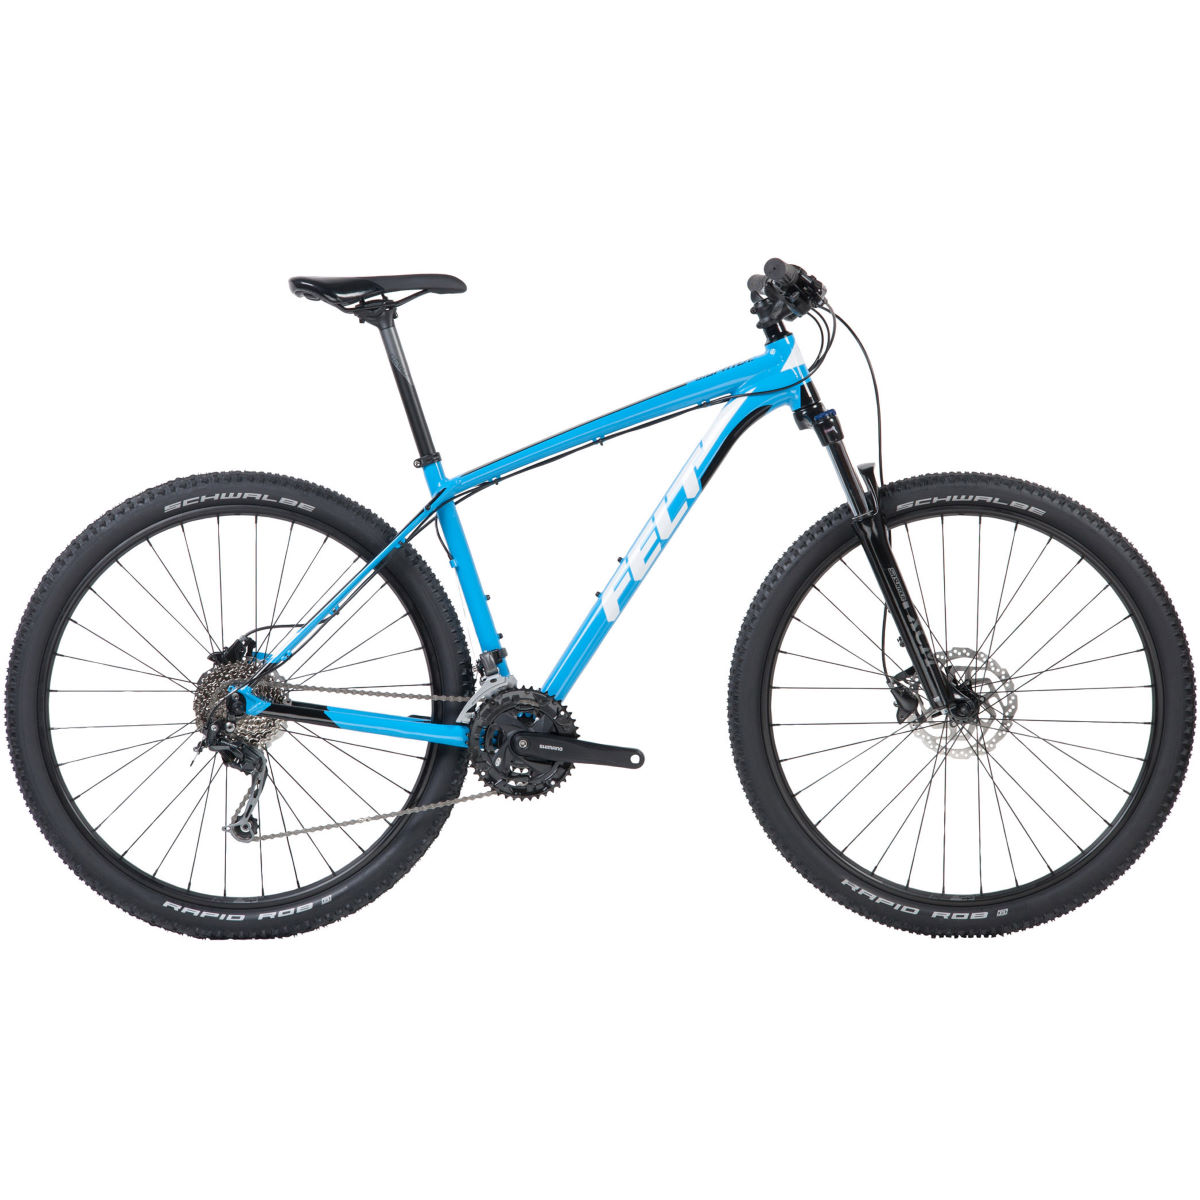 VTT semi-rigide Felt Dispatch 9/60 XC (2018) - 20'' Stock Bike